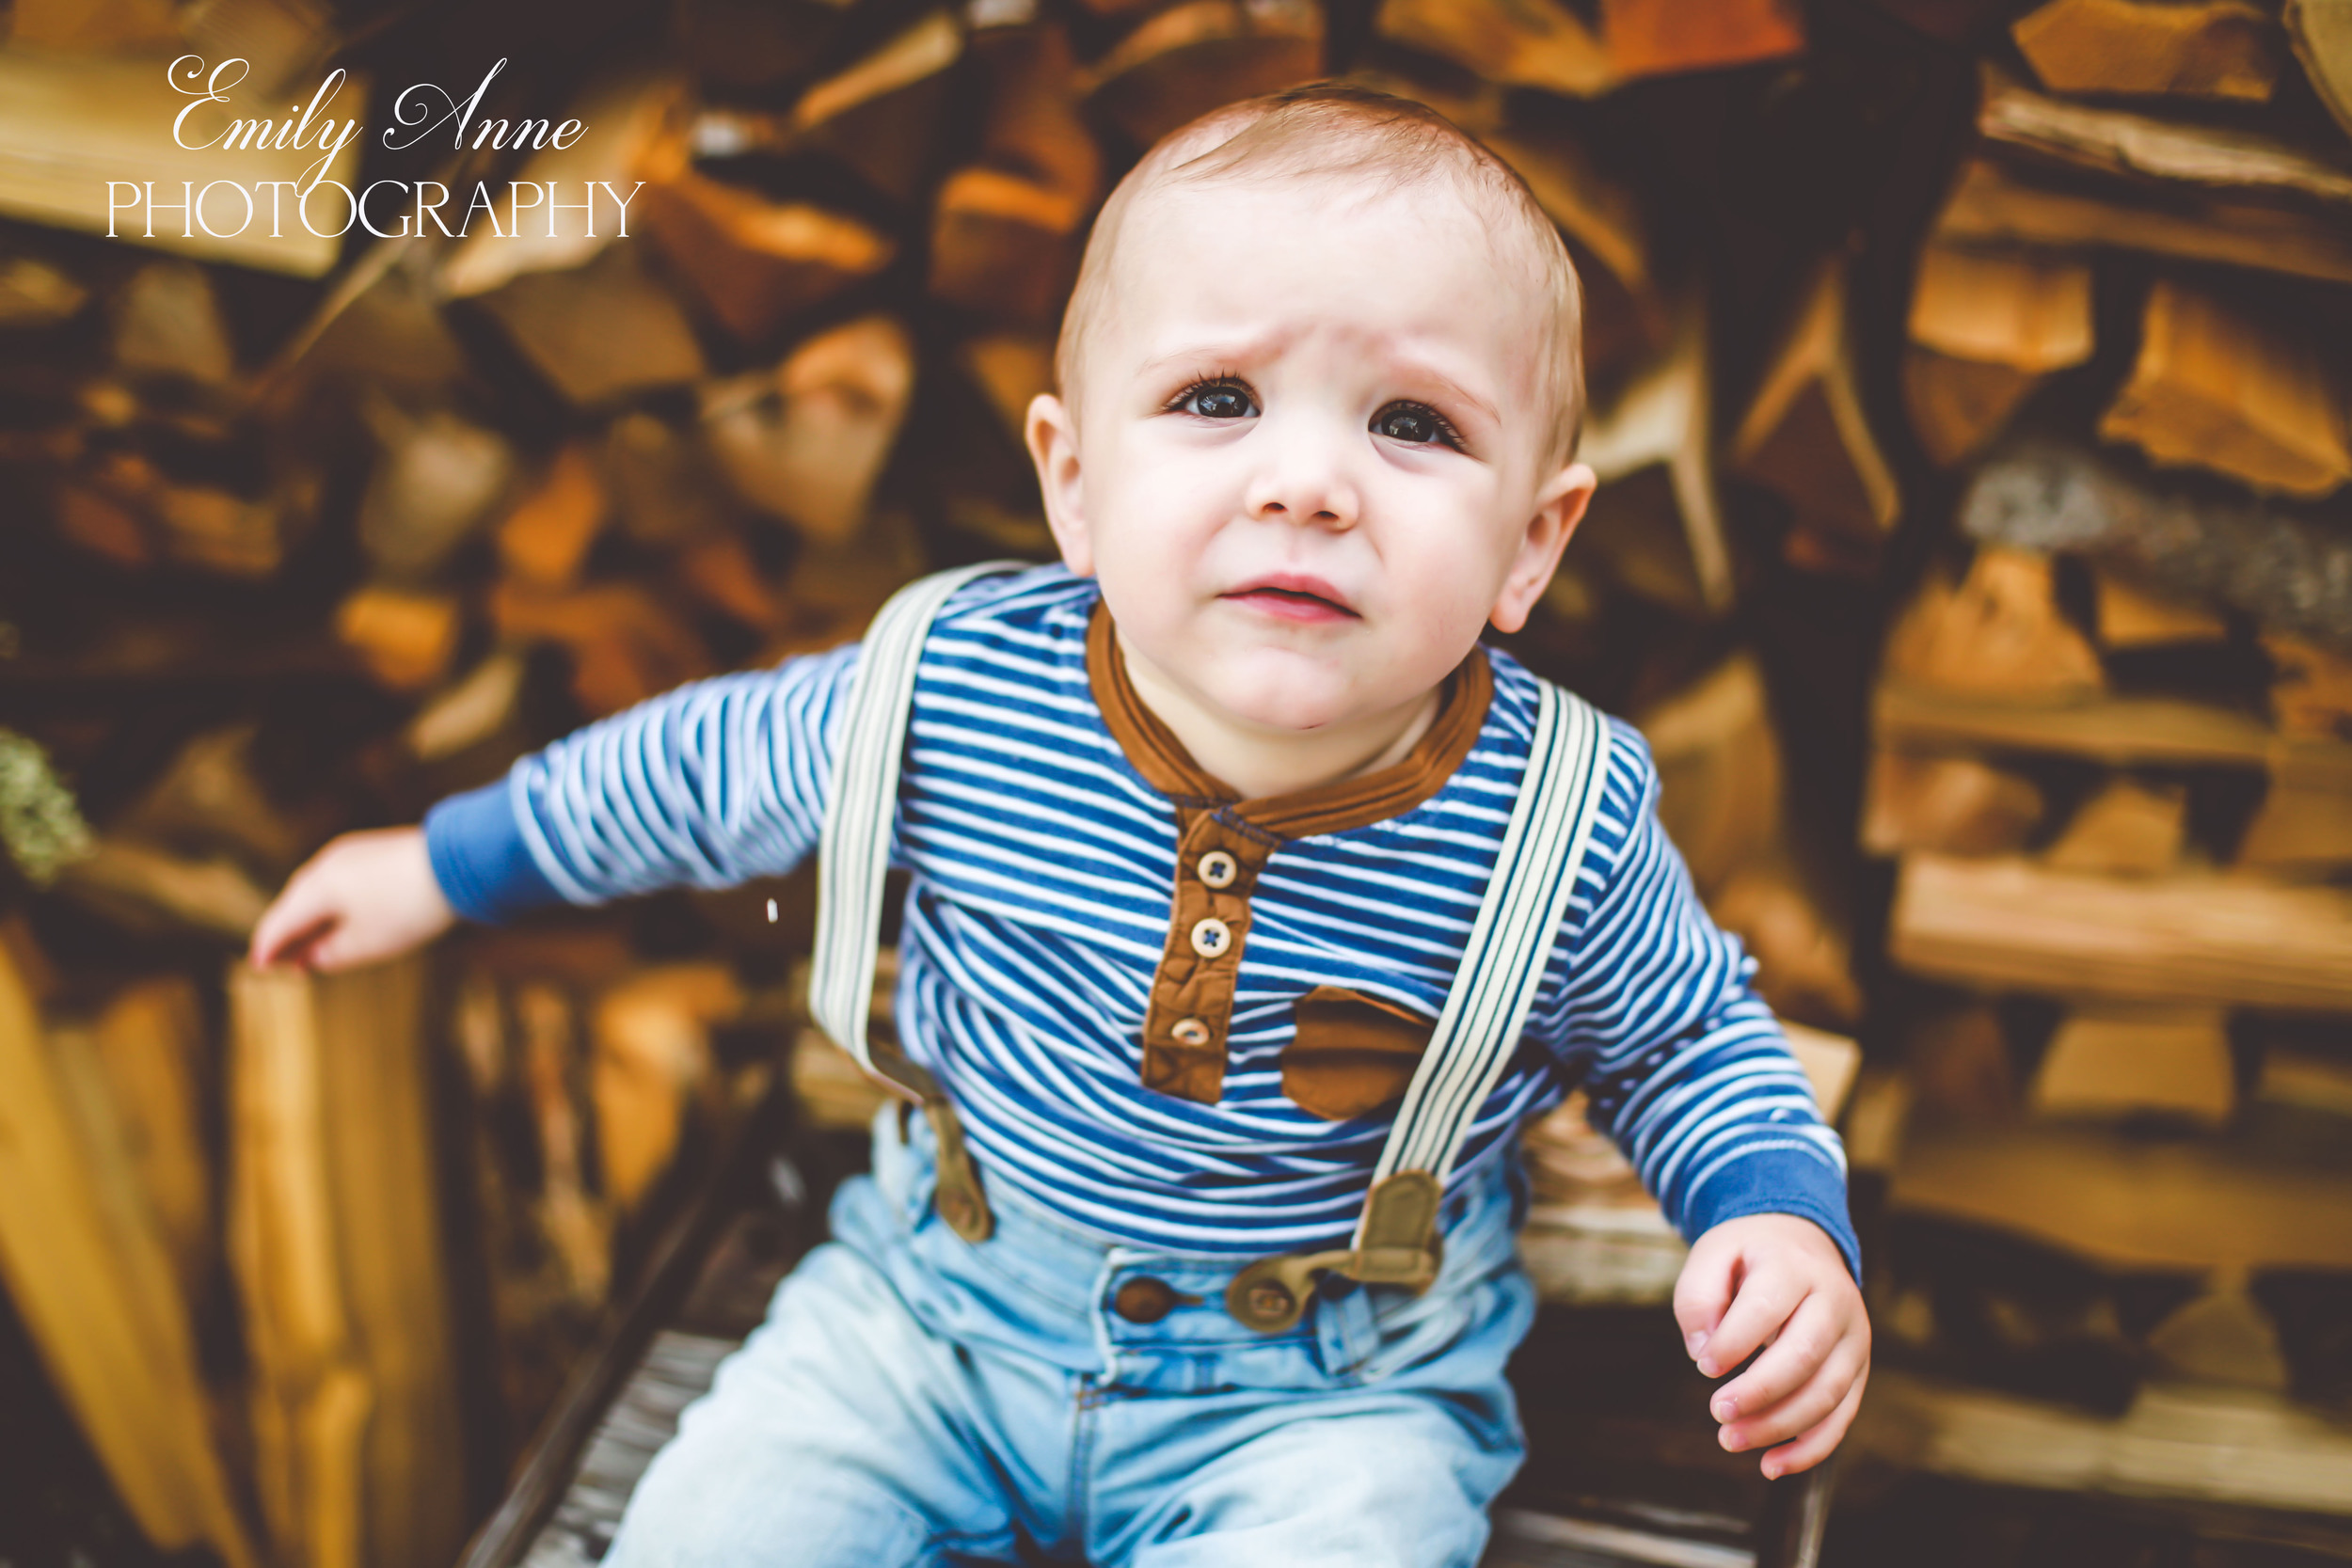 nashville tennessee child photographer middle tennessee Franklin family photos harlinsdale pinkerton affordable nashville family photographer; baby smiles in a woodpile, posing tips and techniques for toddler photography  lifestyle baby photography emily annephotoart nashville and switzerland